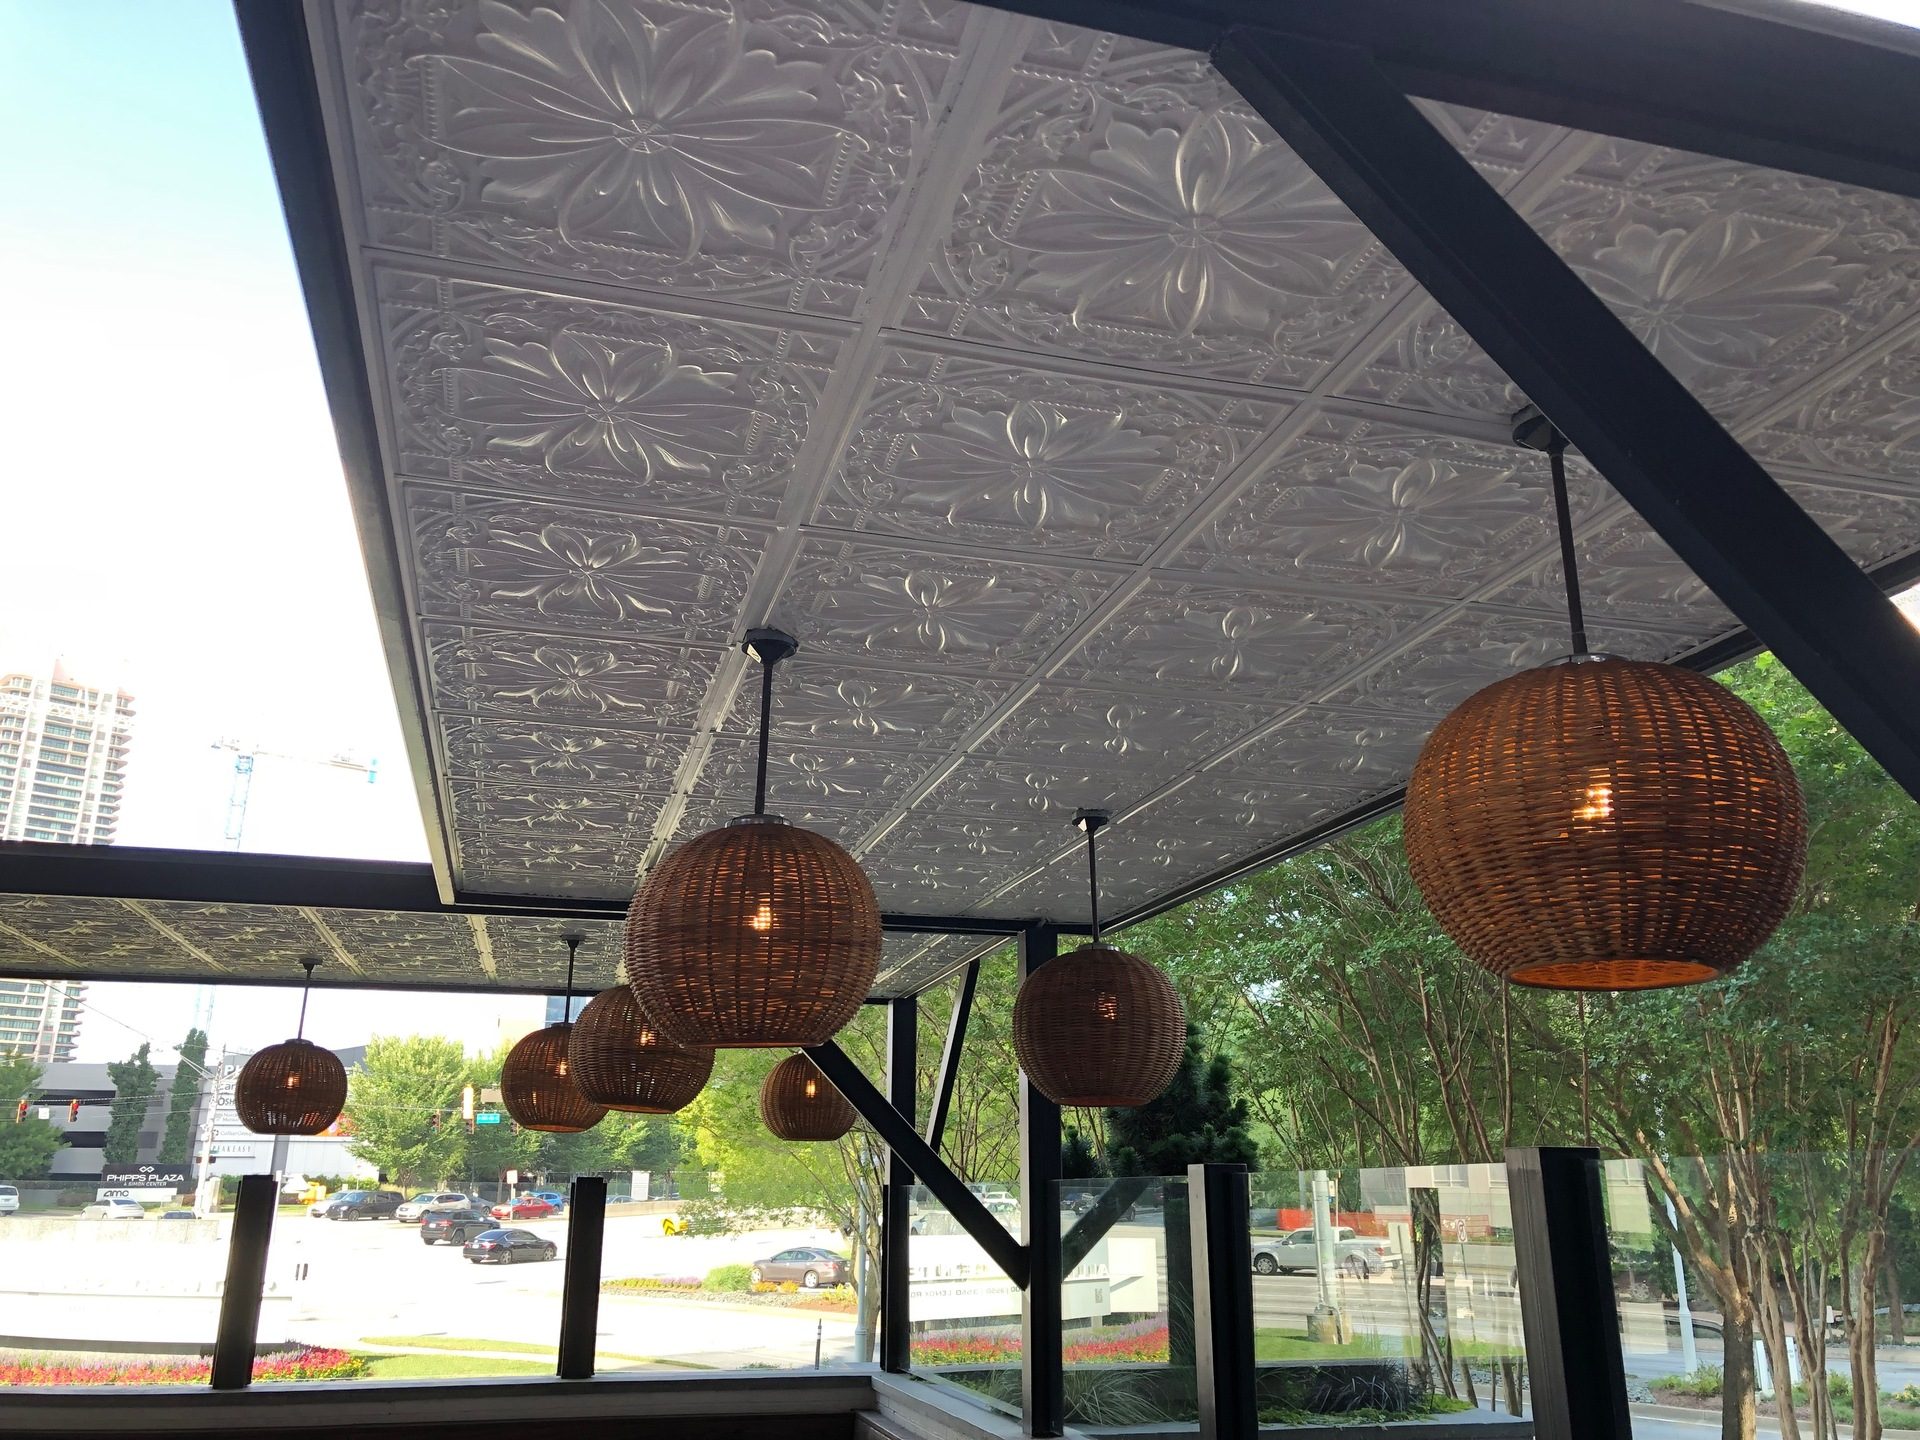 White Mediterranean-style ceiling tiles and hanging wicker lighting creates a relaxing atmosphere at this outdoor bar.